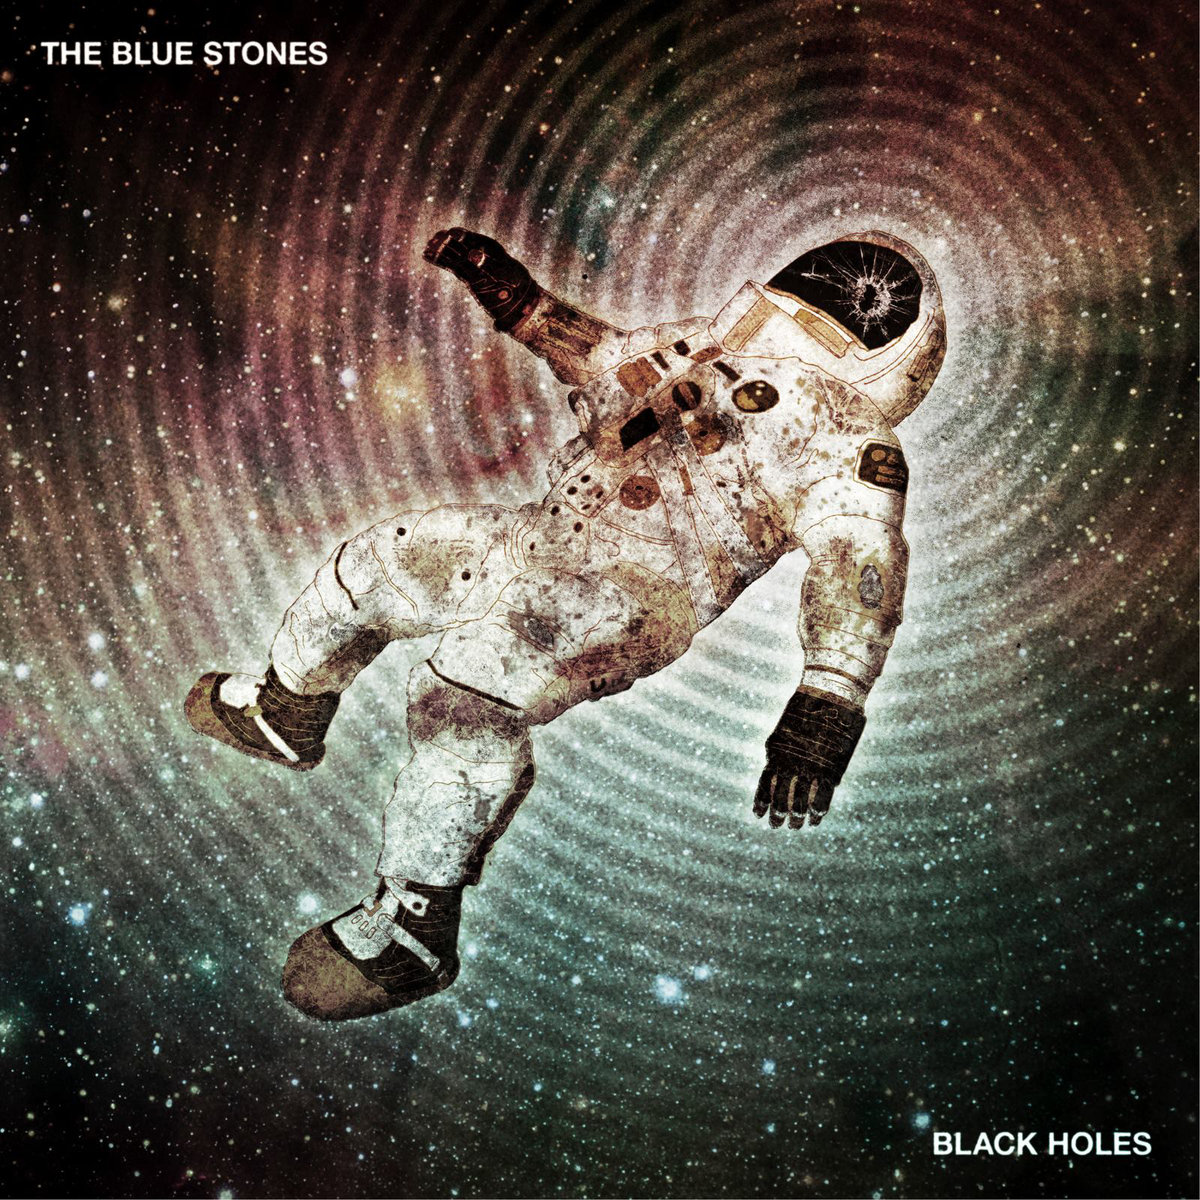 The Blue Stones - Be My Fire @ 'BLACK HOLES' album (alternative, blues)